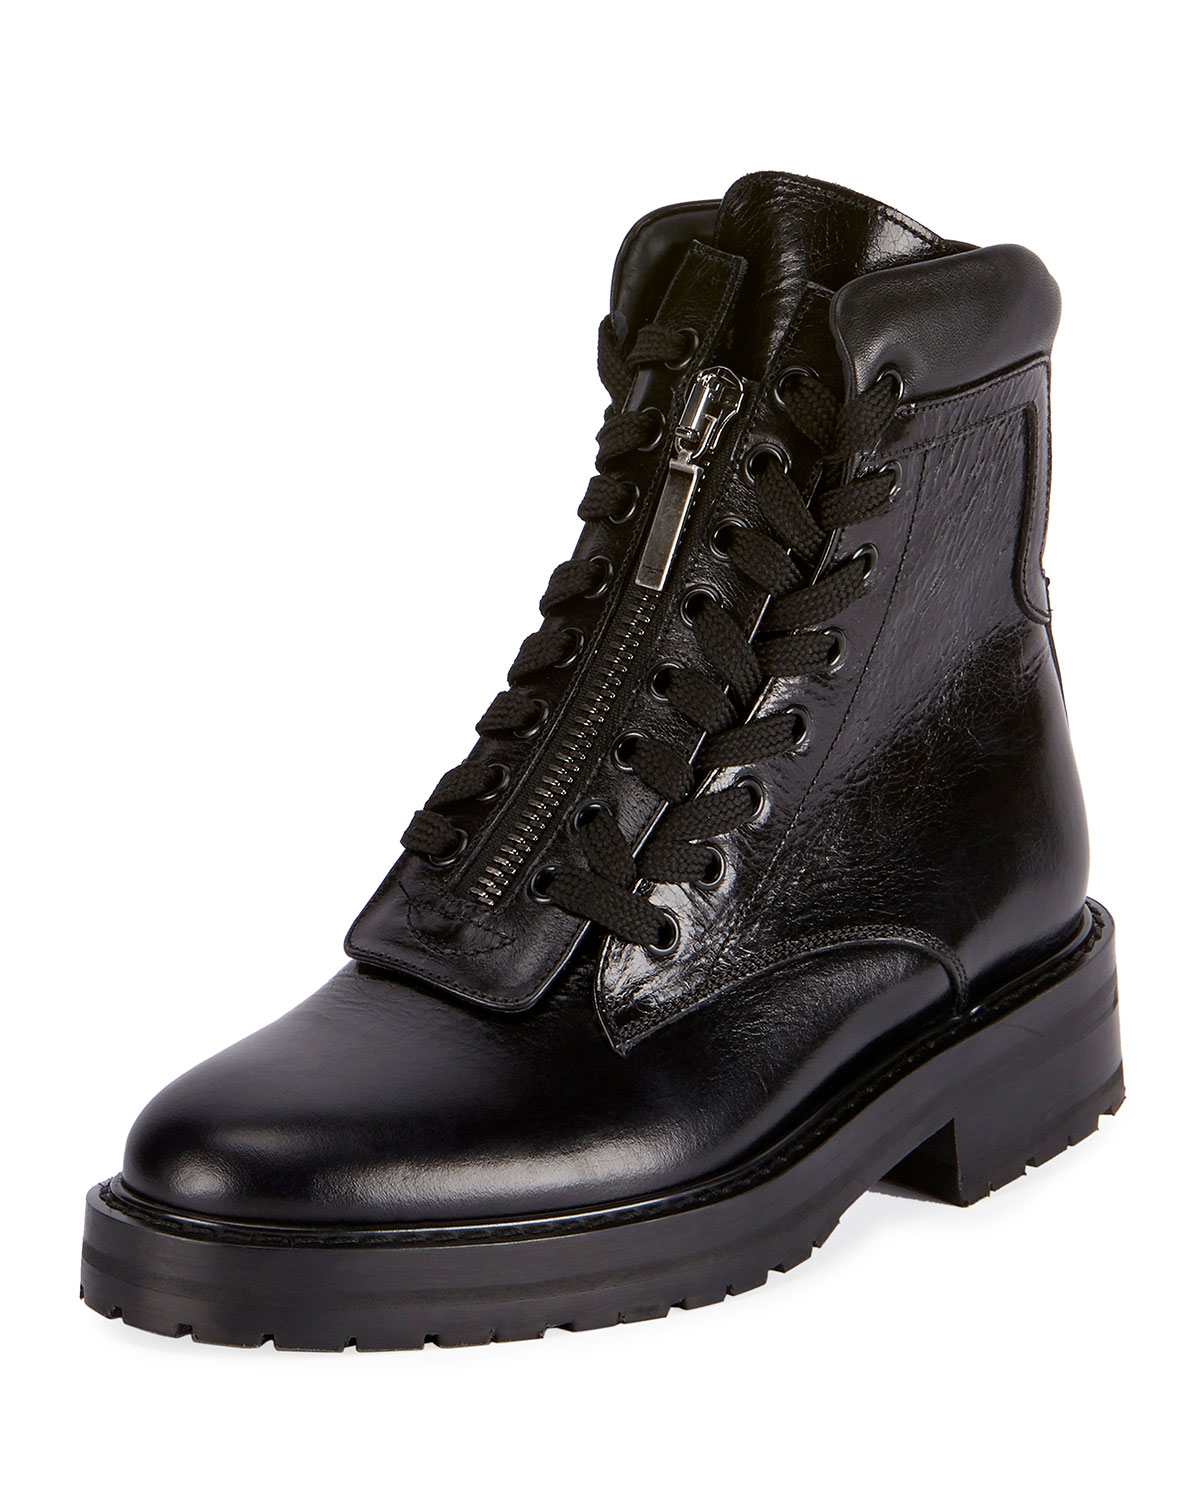 William Double-Laced Combat Boot, Black